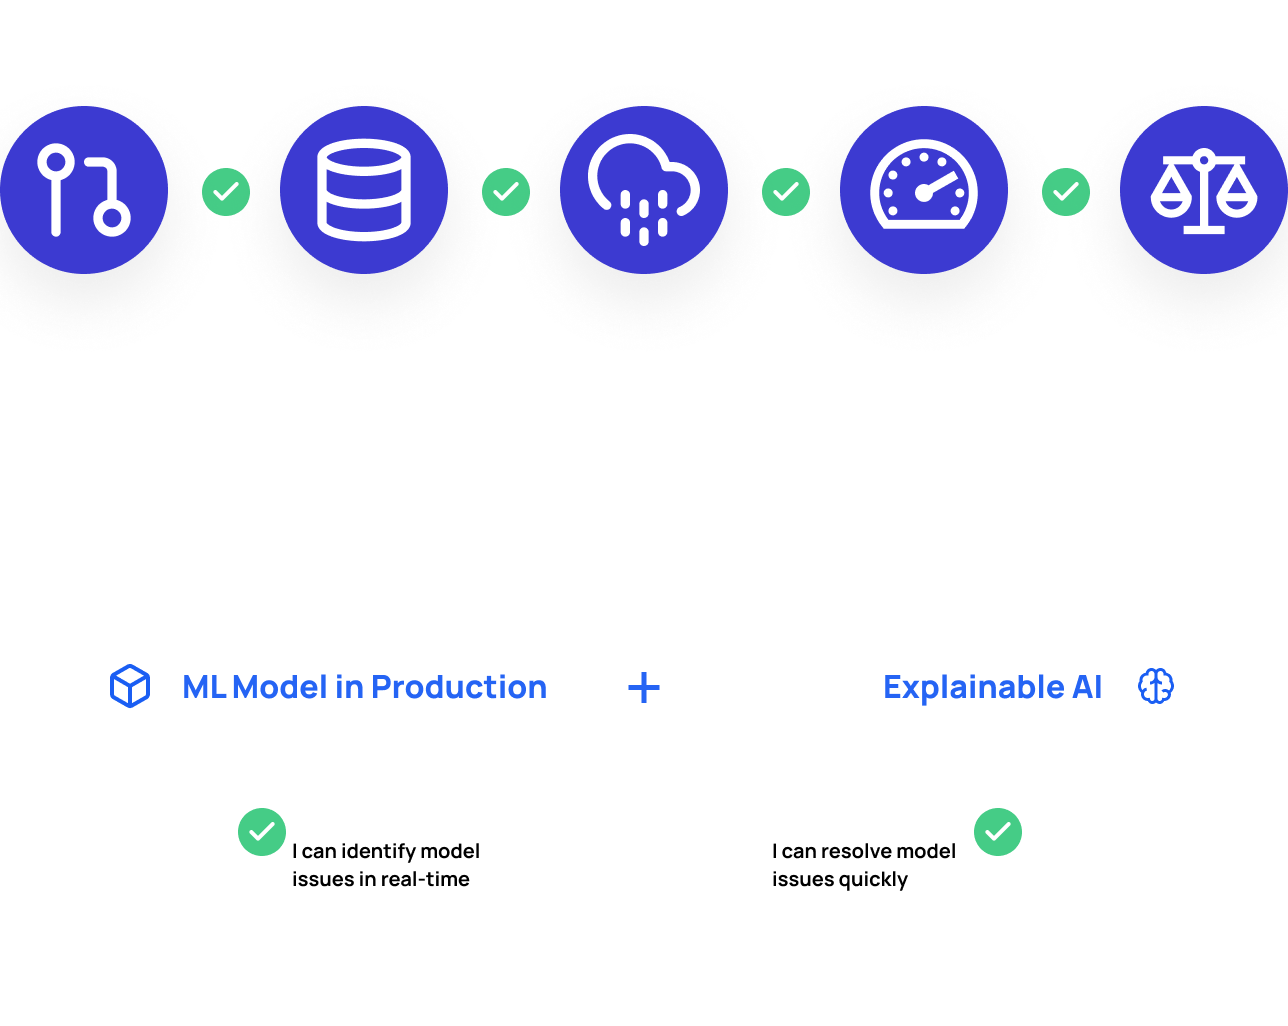 An illustration of MLOps with Fiddler's ML MPM Platform. Thanks to Explainable AI, Fiddler's ML Model Performance Management Platform helps data scientists and ML engineers to quickly find and solve ML Issues such as data drift, data integrity, outliers, performance, and bias.